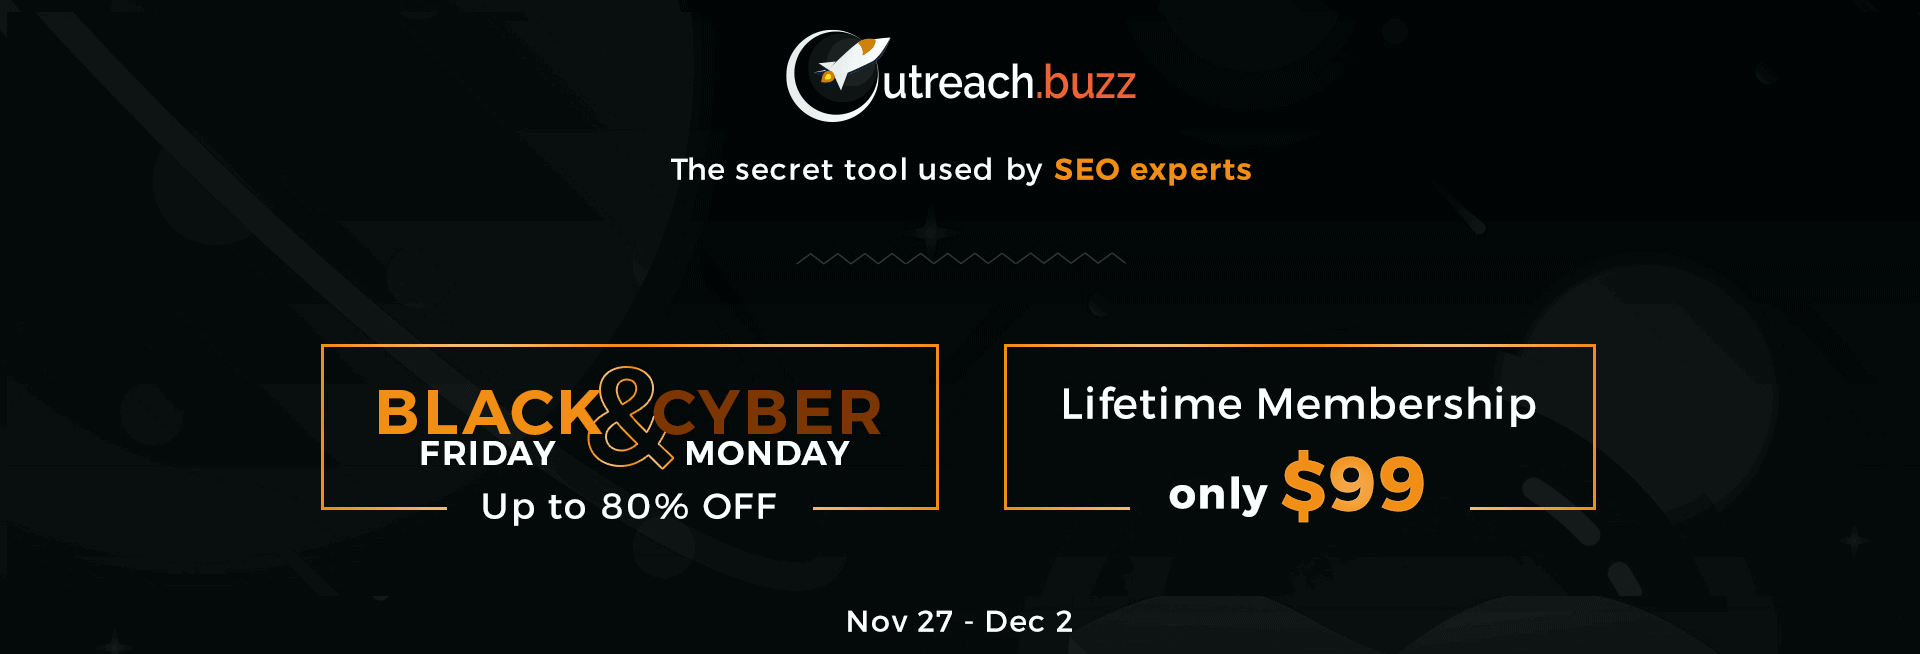 OutreachBuzz Black Friday 2020